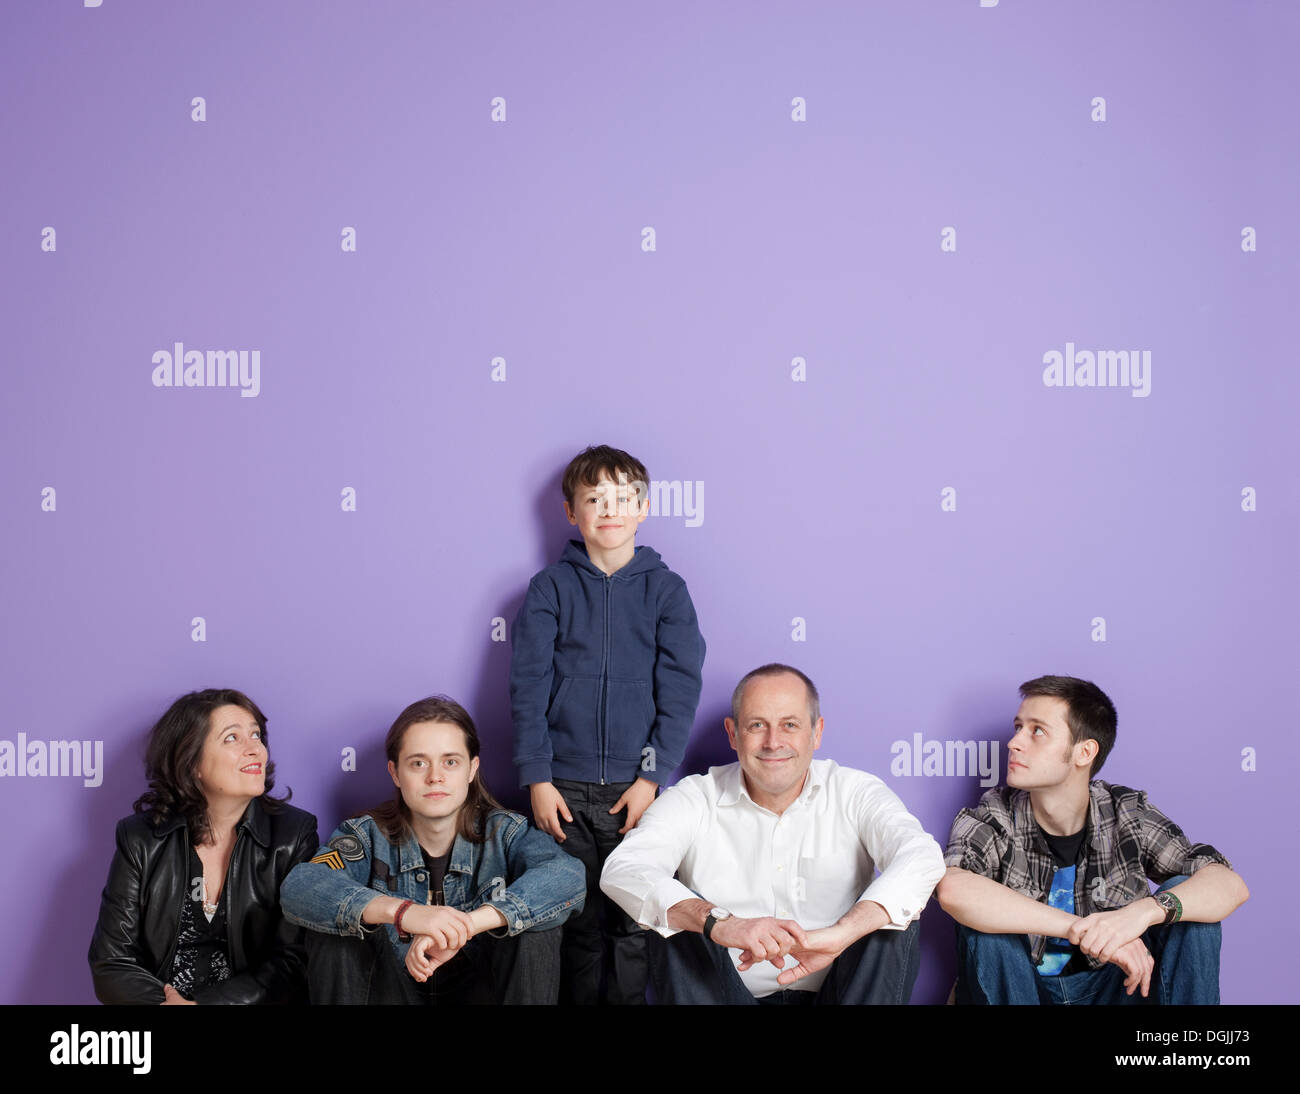 Boy standing in the middle of sitting family in front of purple background - Stock Image